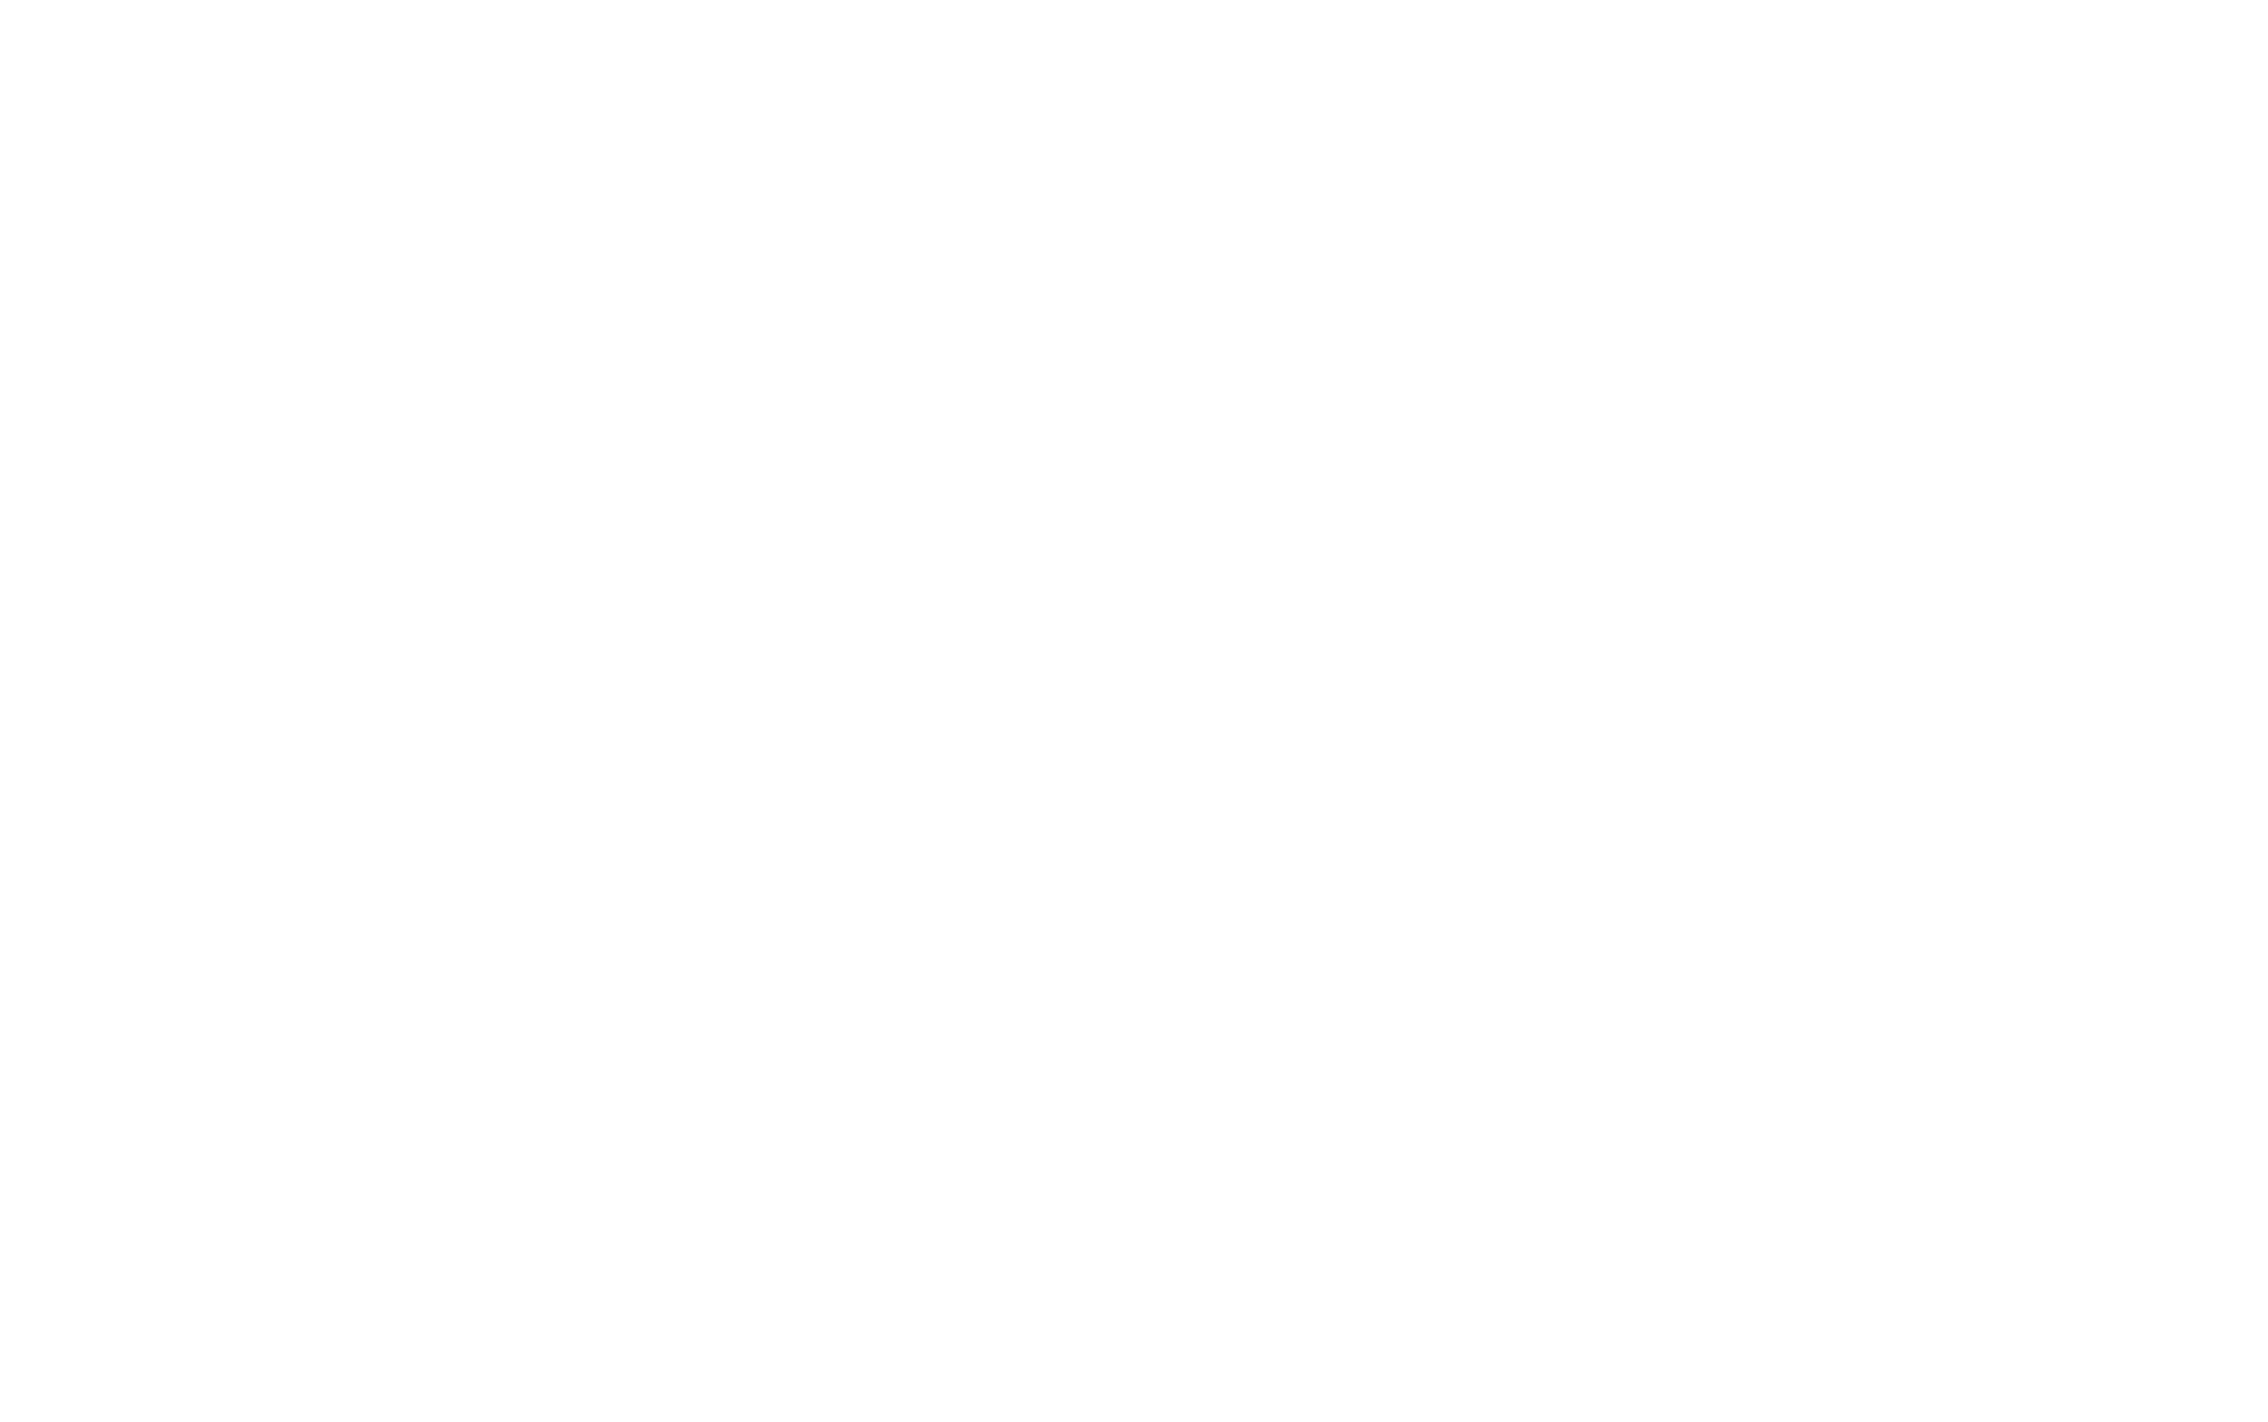 The Bakers Arms Droxford